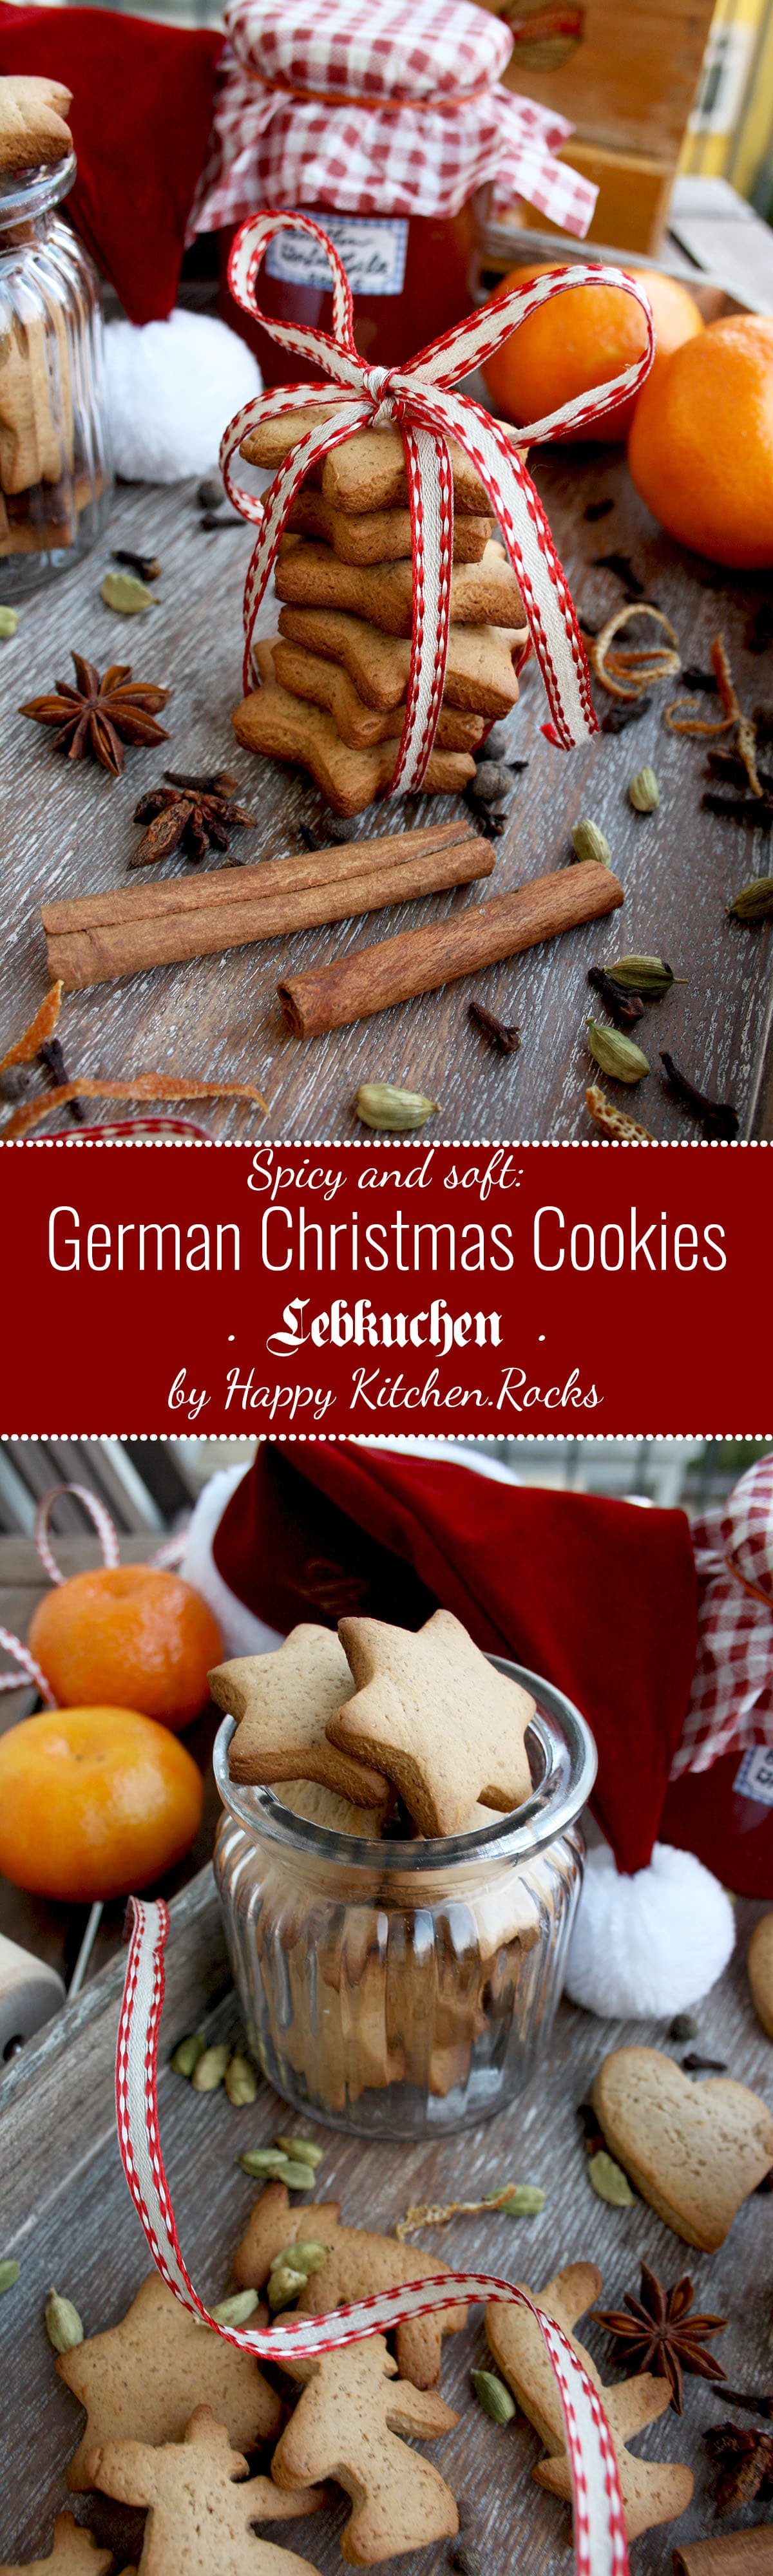 German Christmas Cookies - Lebkuchen - Super Long Collage of Two Images and Text Overlay